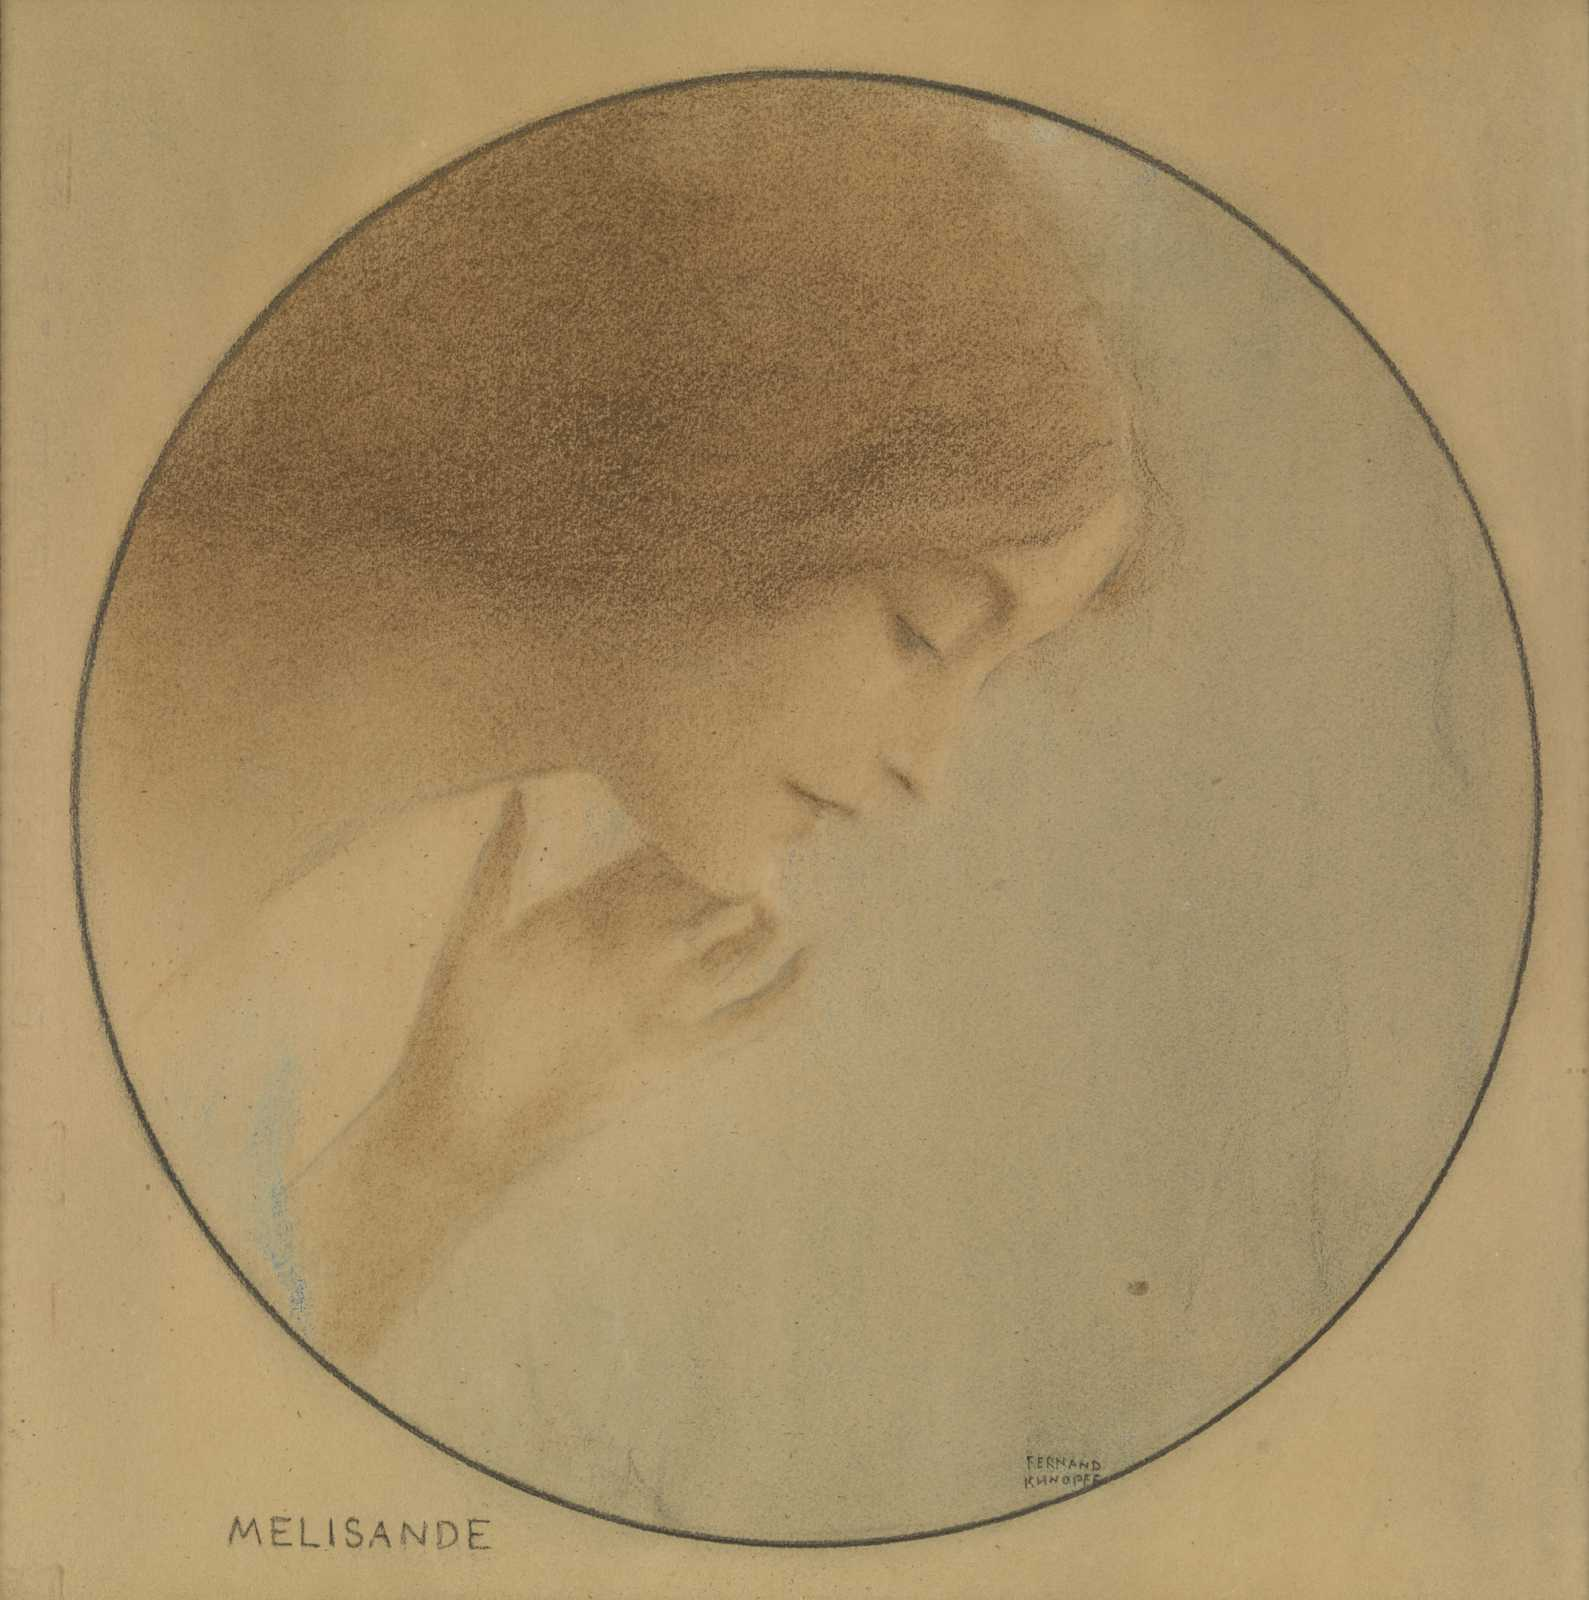 Fernand Khnopff: 'Melisande'. Pastel and coloured pencil on paper, 330 x 330 mm